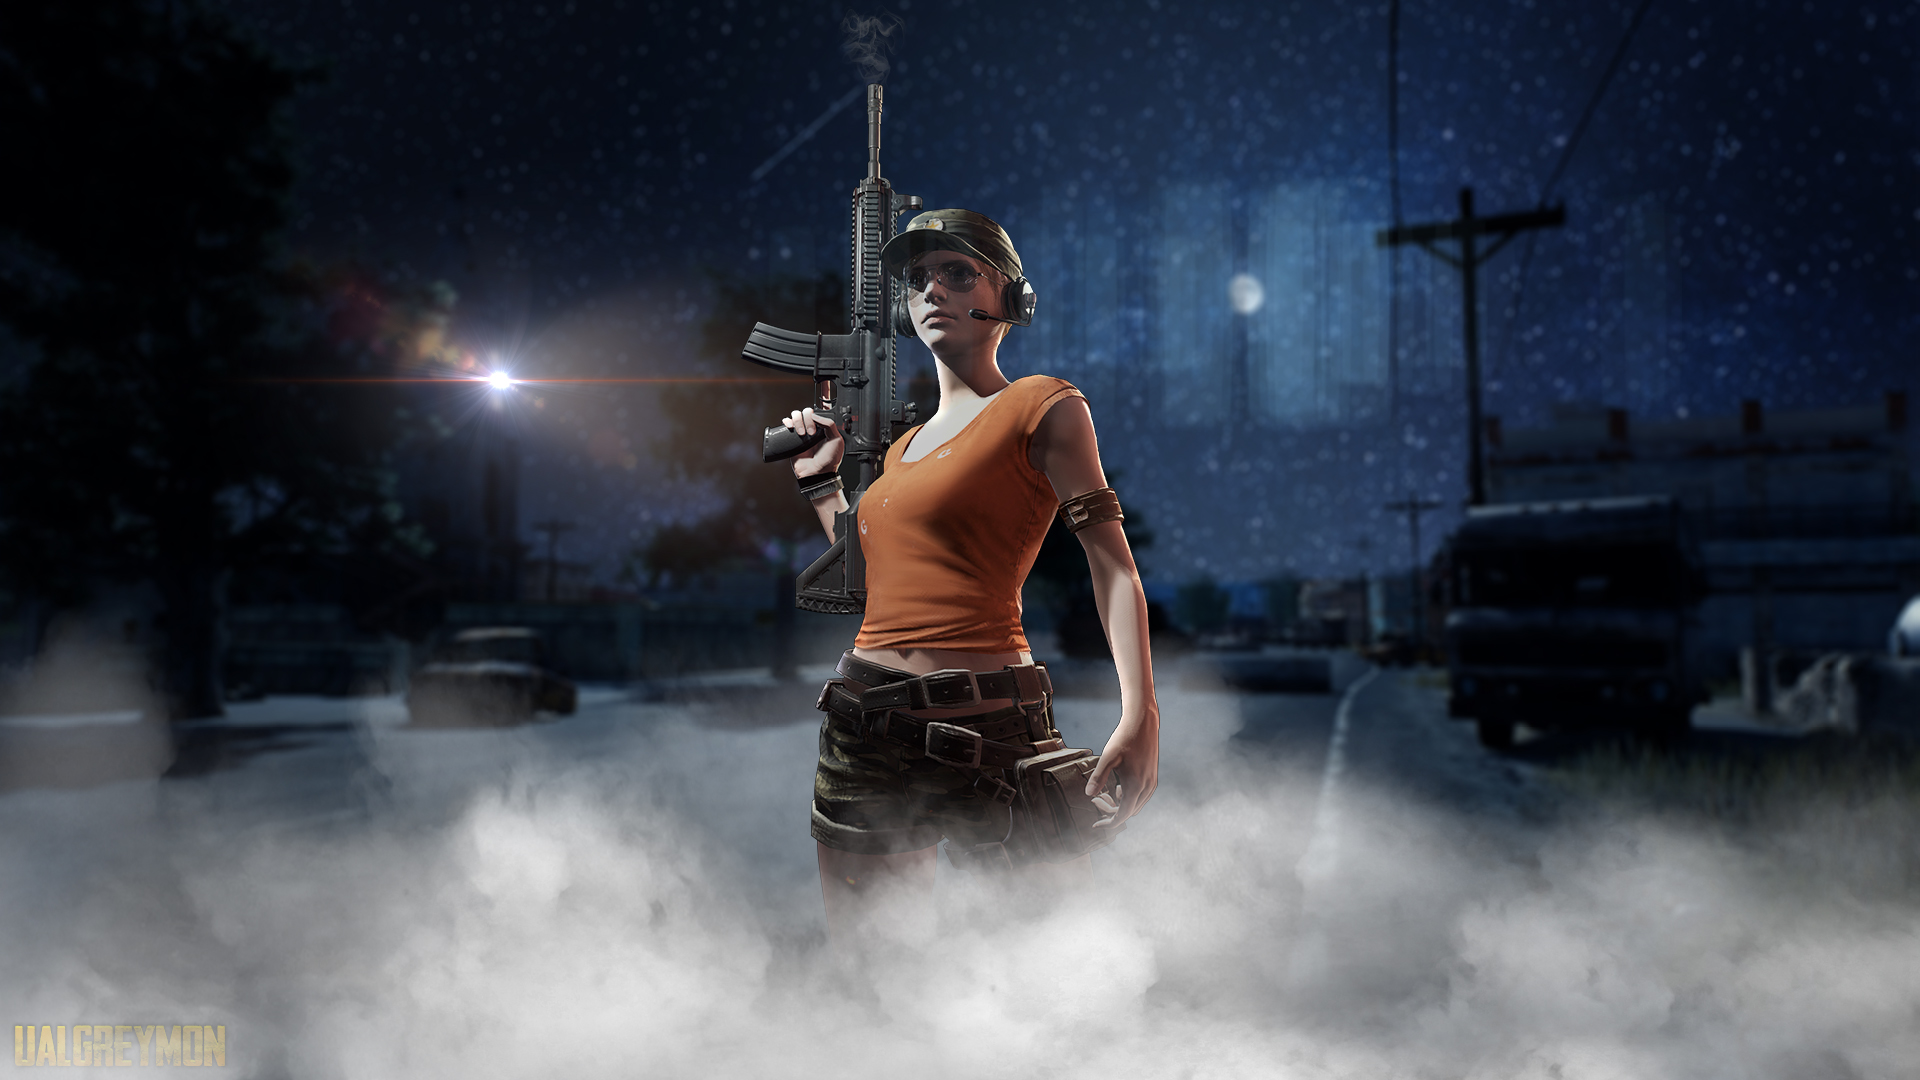 Pubg Night, HD Games, 4k Wallpapers, Images, Backgrounds